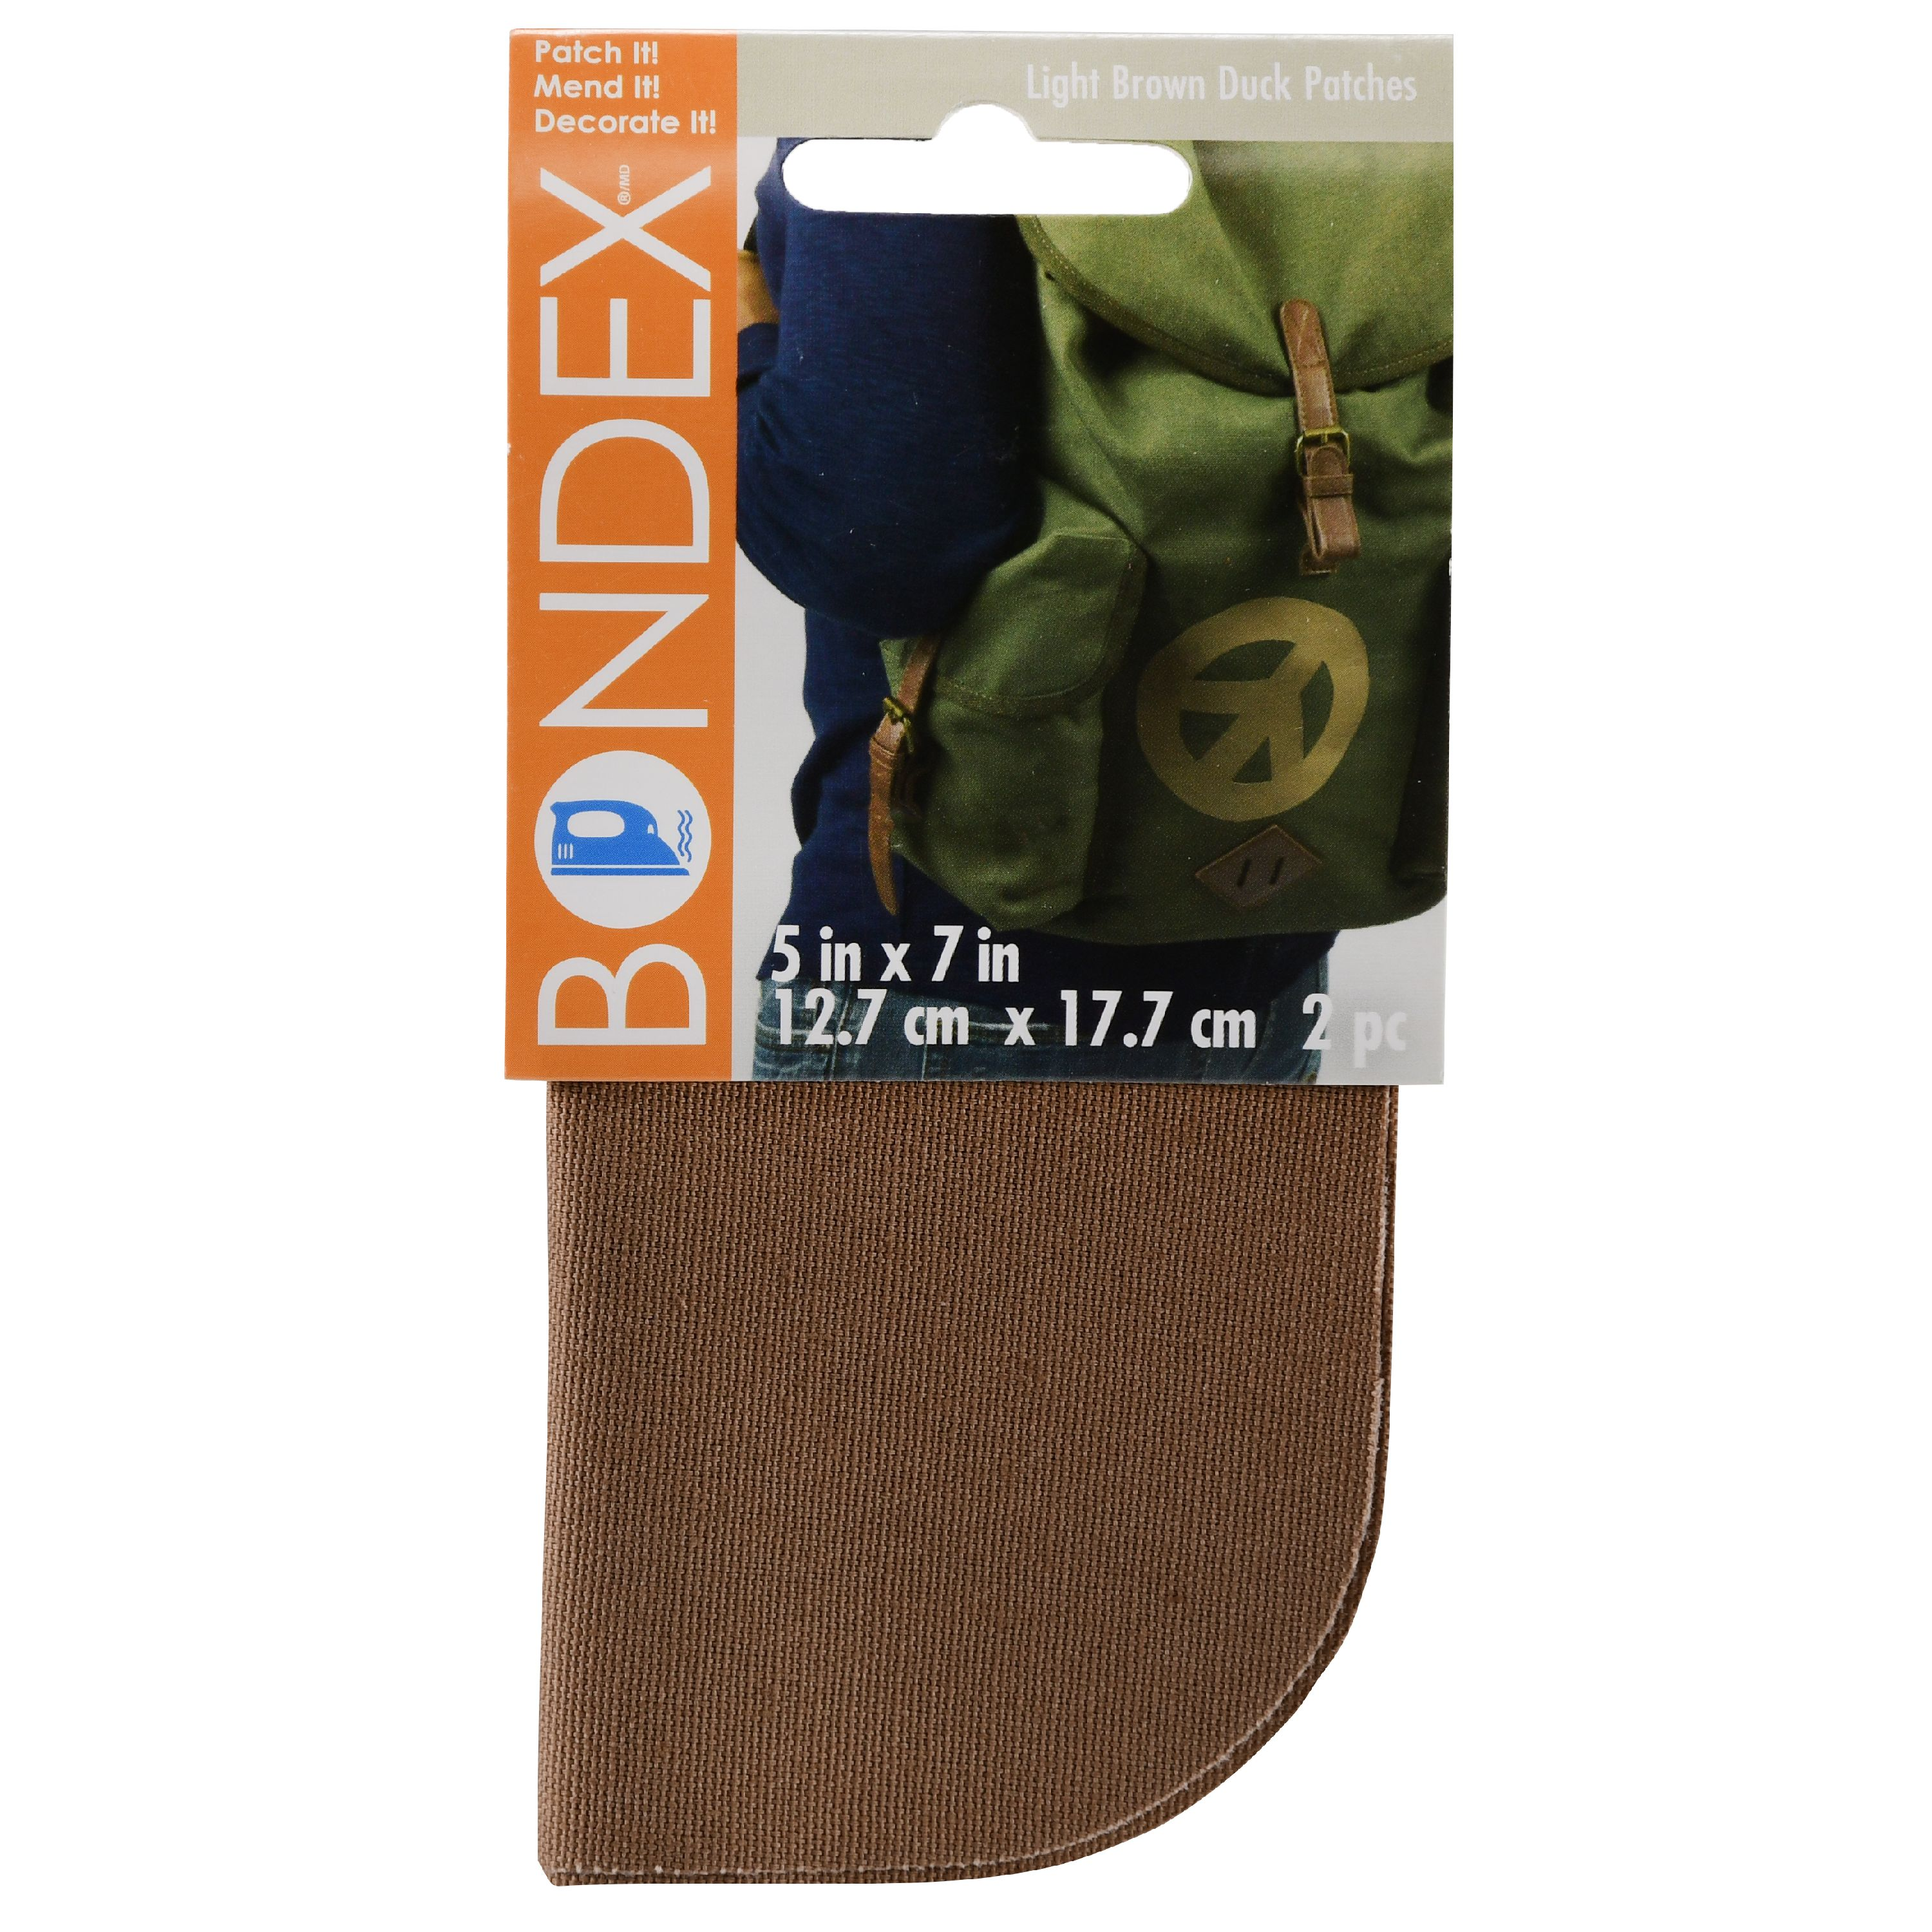 Bondex Bndx Patch Duck 5in X 7in